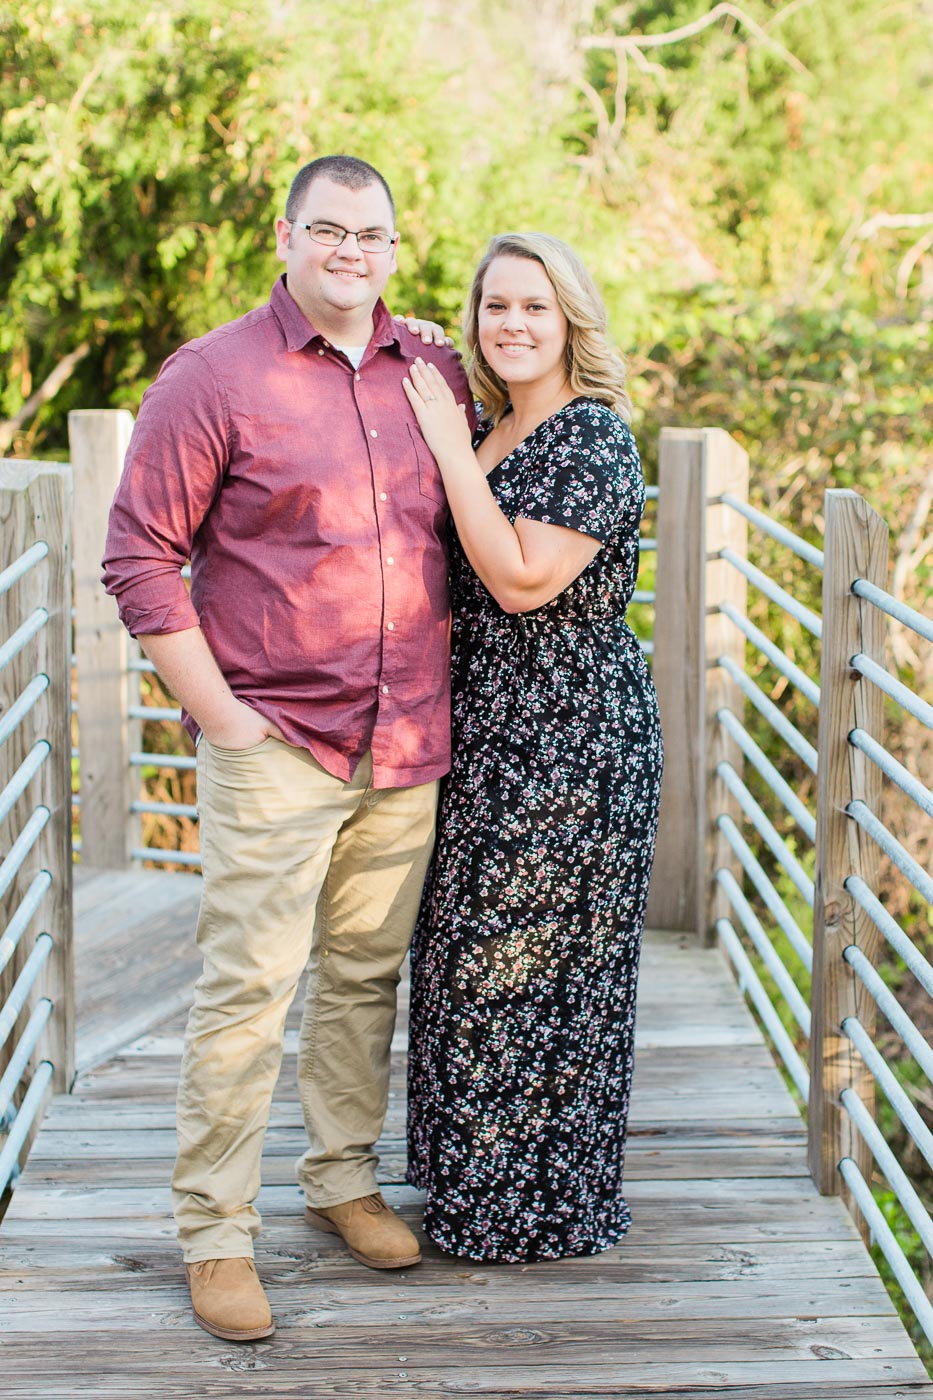 Huntington beach state park engagement session at fall